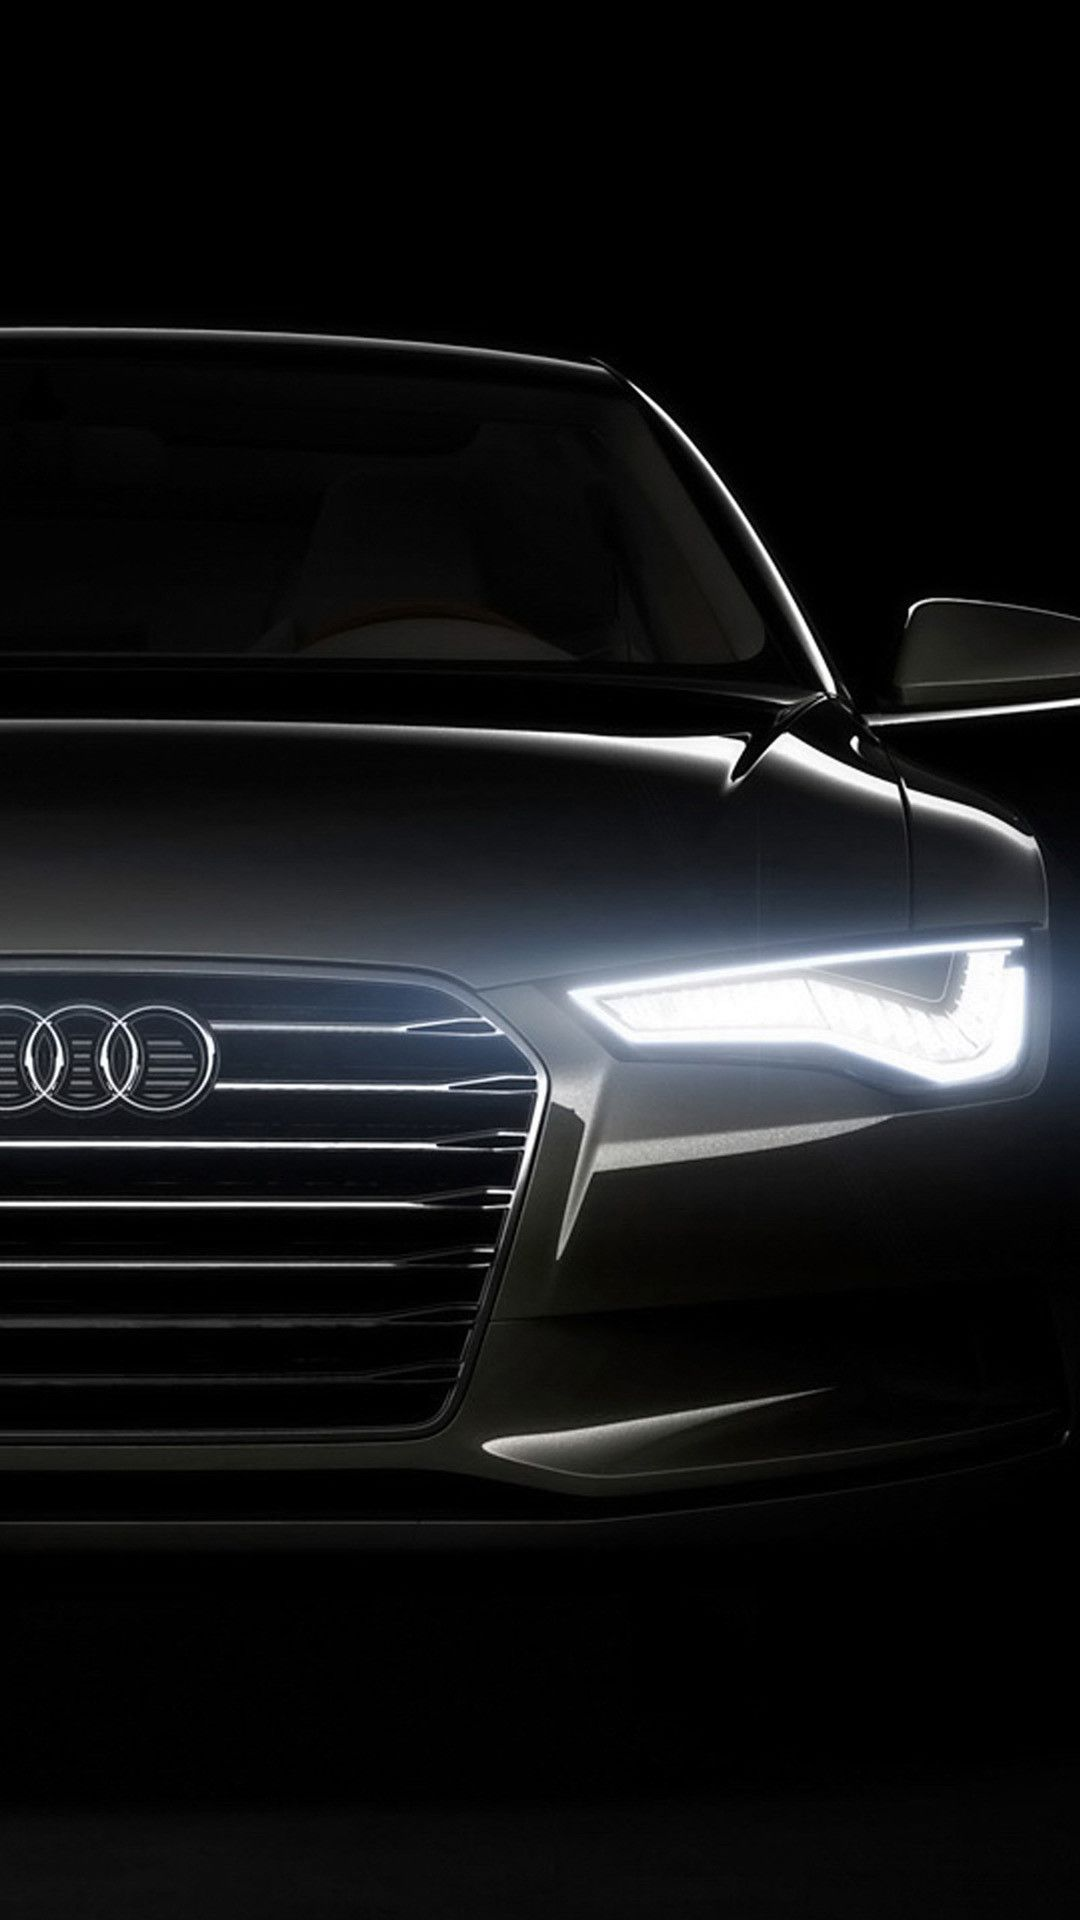 Audi Iphone Wallpapers Top Free Audi Iphone Backgrounds Wallpaperaccess